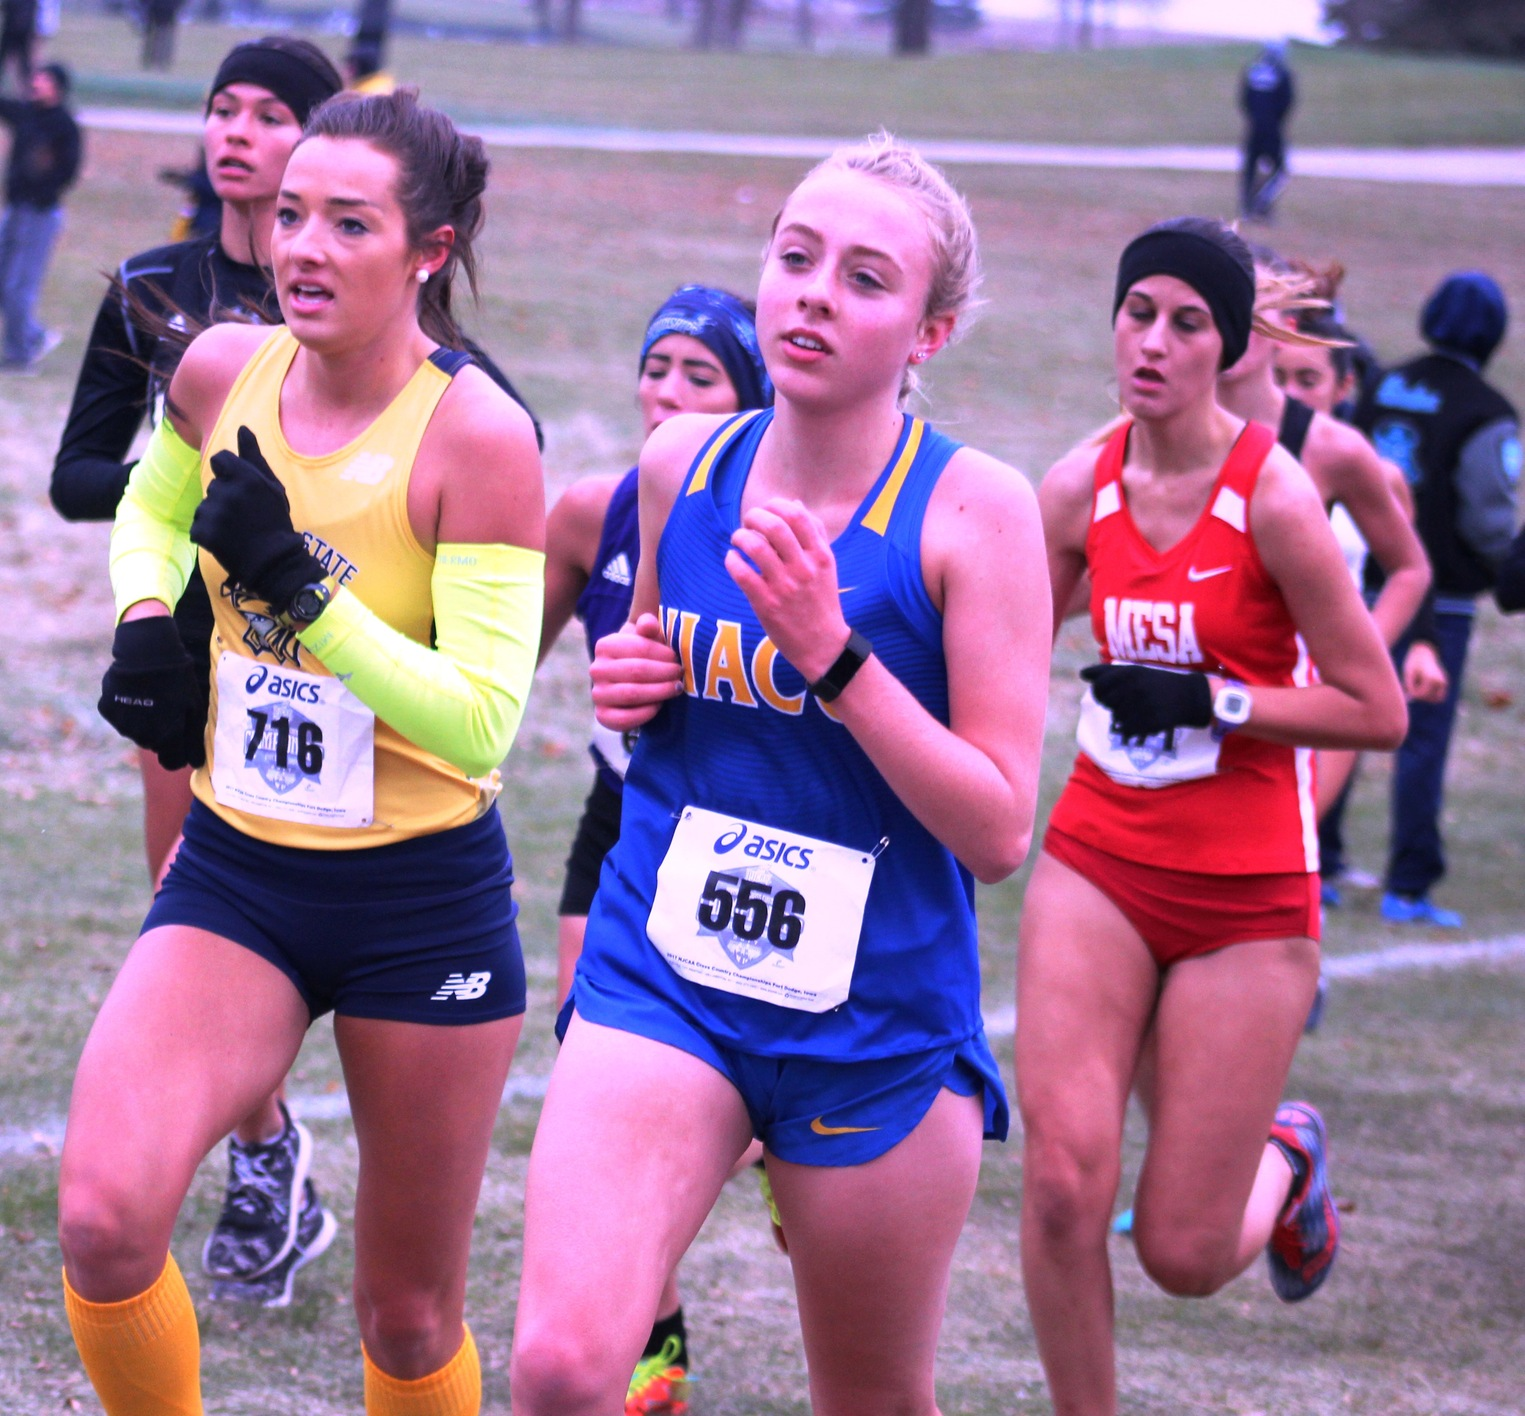 NIACC's Julia Dunlavey runs to a 123rd place finish at last season's national meet in Fort Dodge.